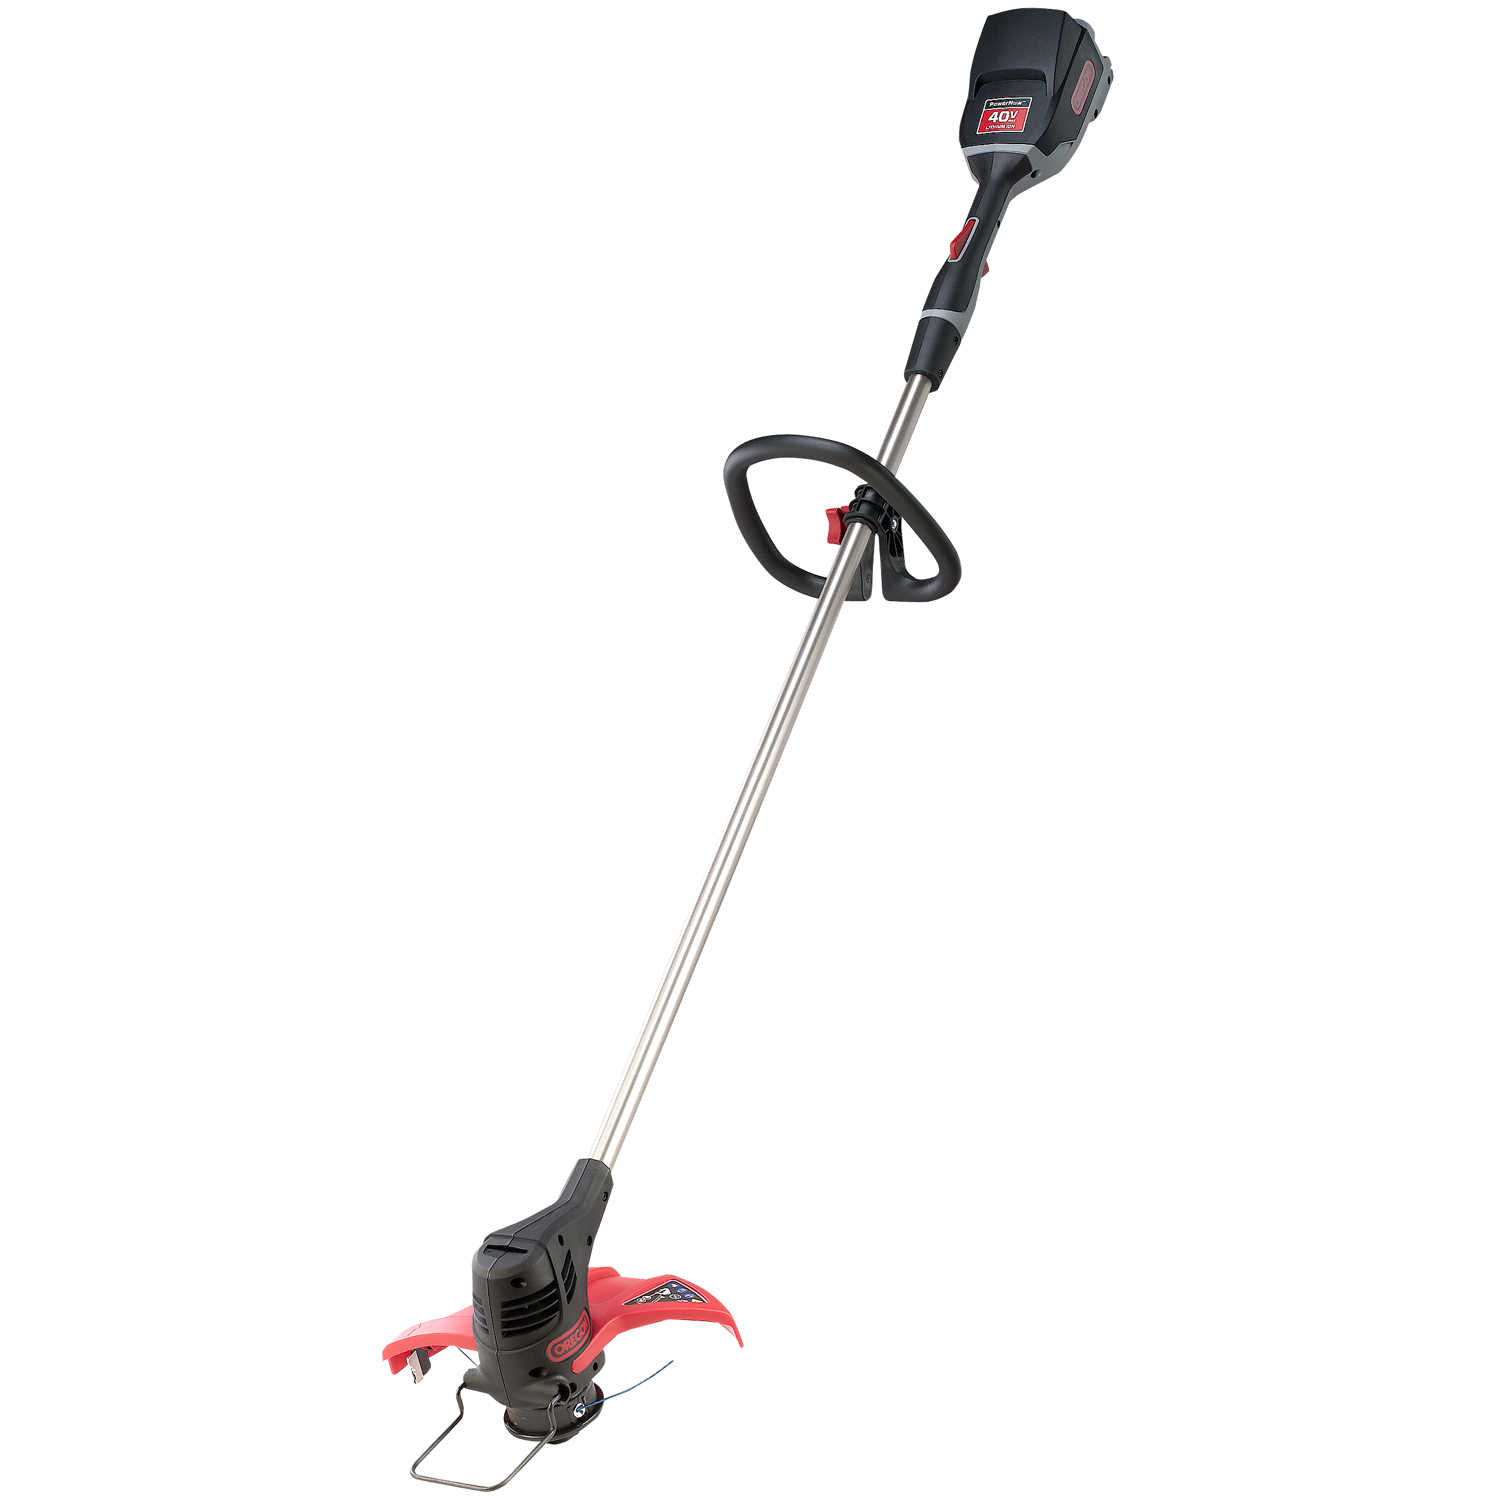 Oregon Powernow 40v Max Model St250 Cordless Trimmer Edger